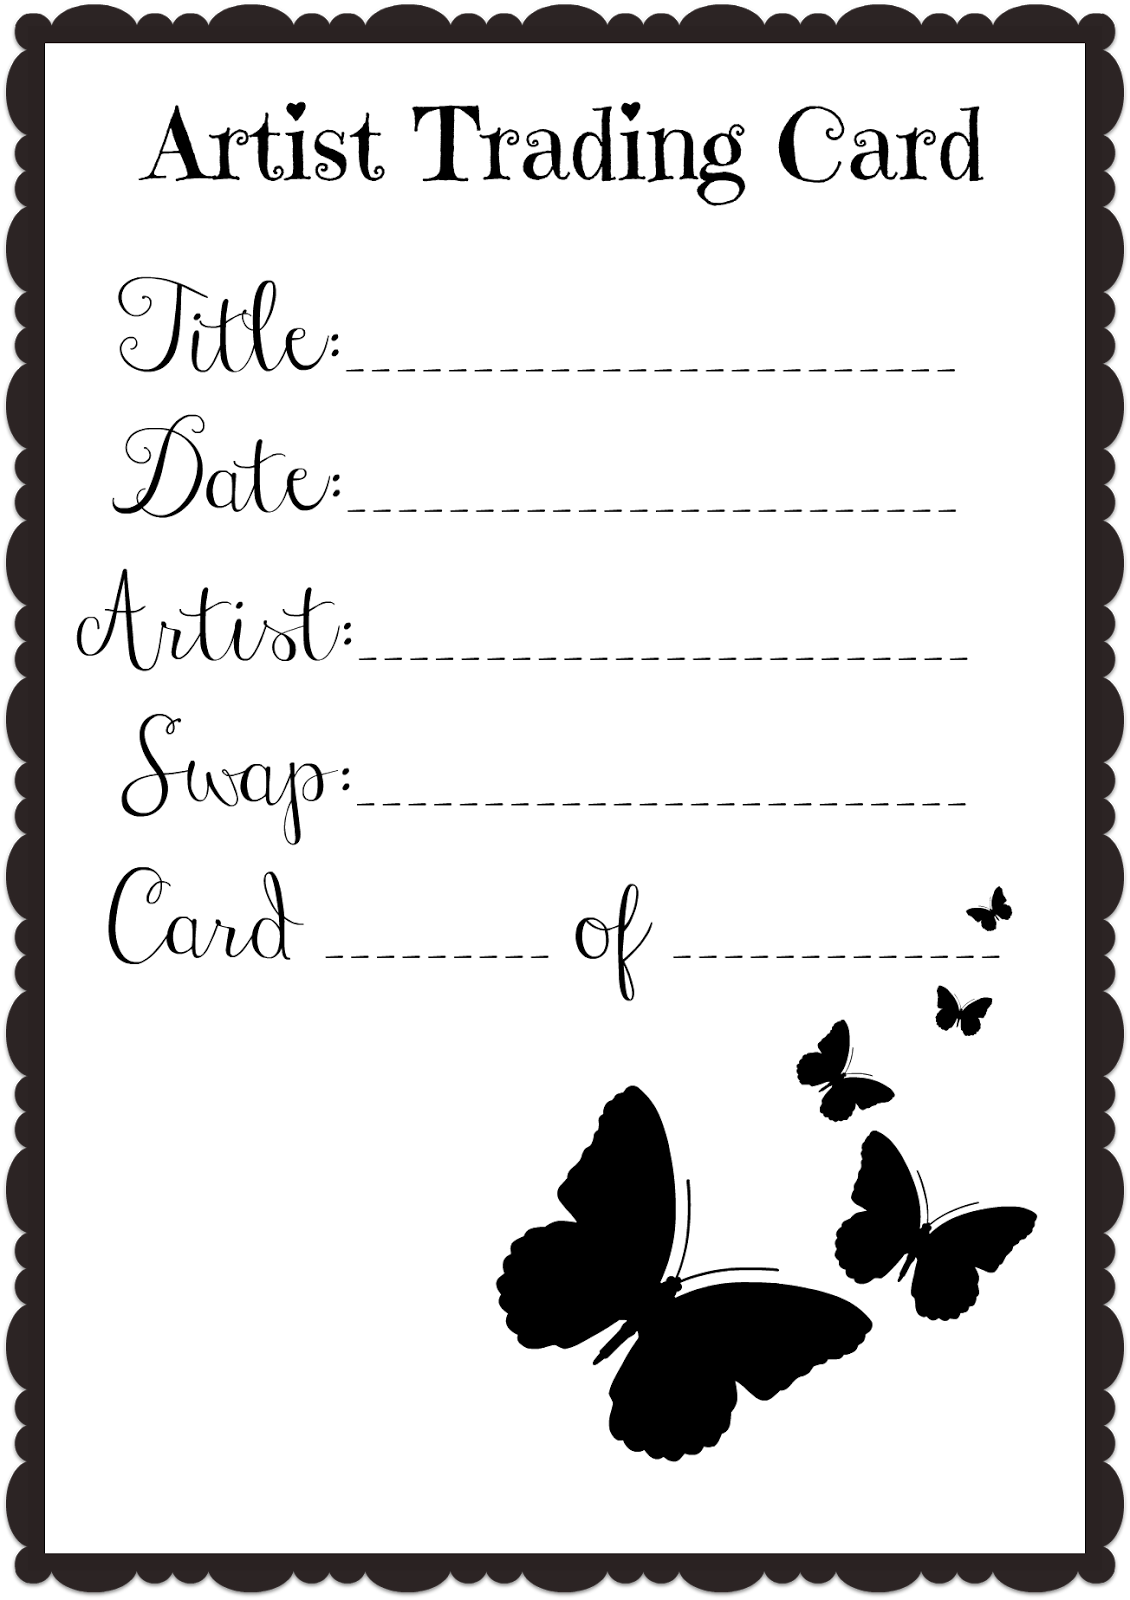 Artist trading card atc index card rolodex ideas pinterest artist trading card atc index card rolodex ideas pinterest artist trading cards trading cards and epiphany publicscrutiny Gallery